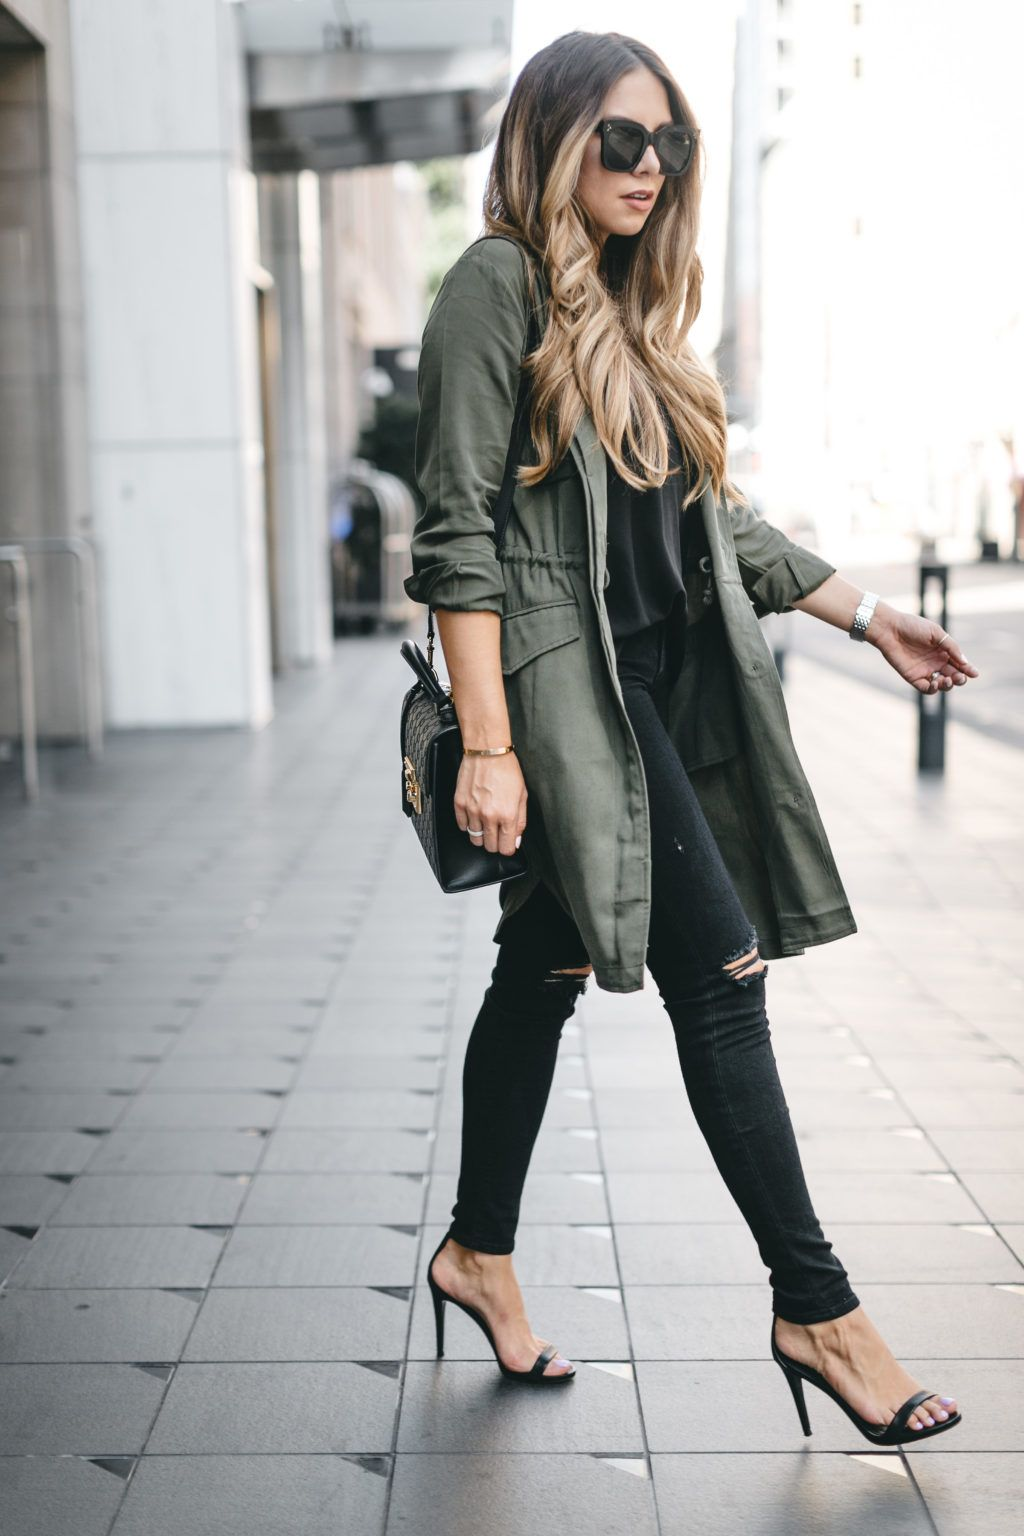 Army Green Trench Coat The Teacher Diva A Dallas Fashion Blog Featuring Beauty Lifestyle Army Green Jacket Outfit Green Jacket Outfit Green Trench Coat [ 1536 x 1024 Pixel ]